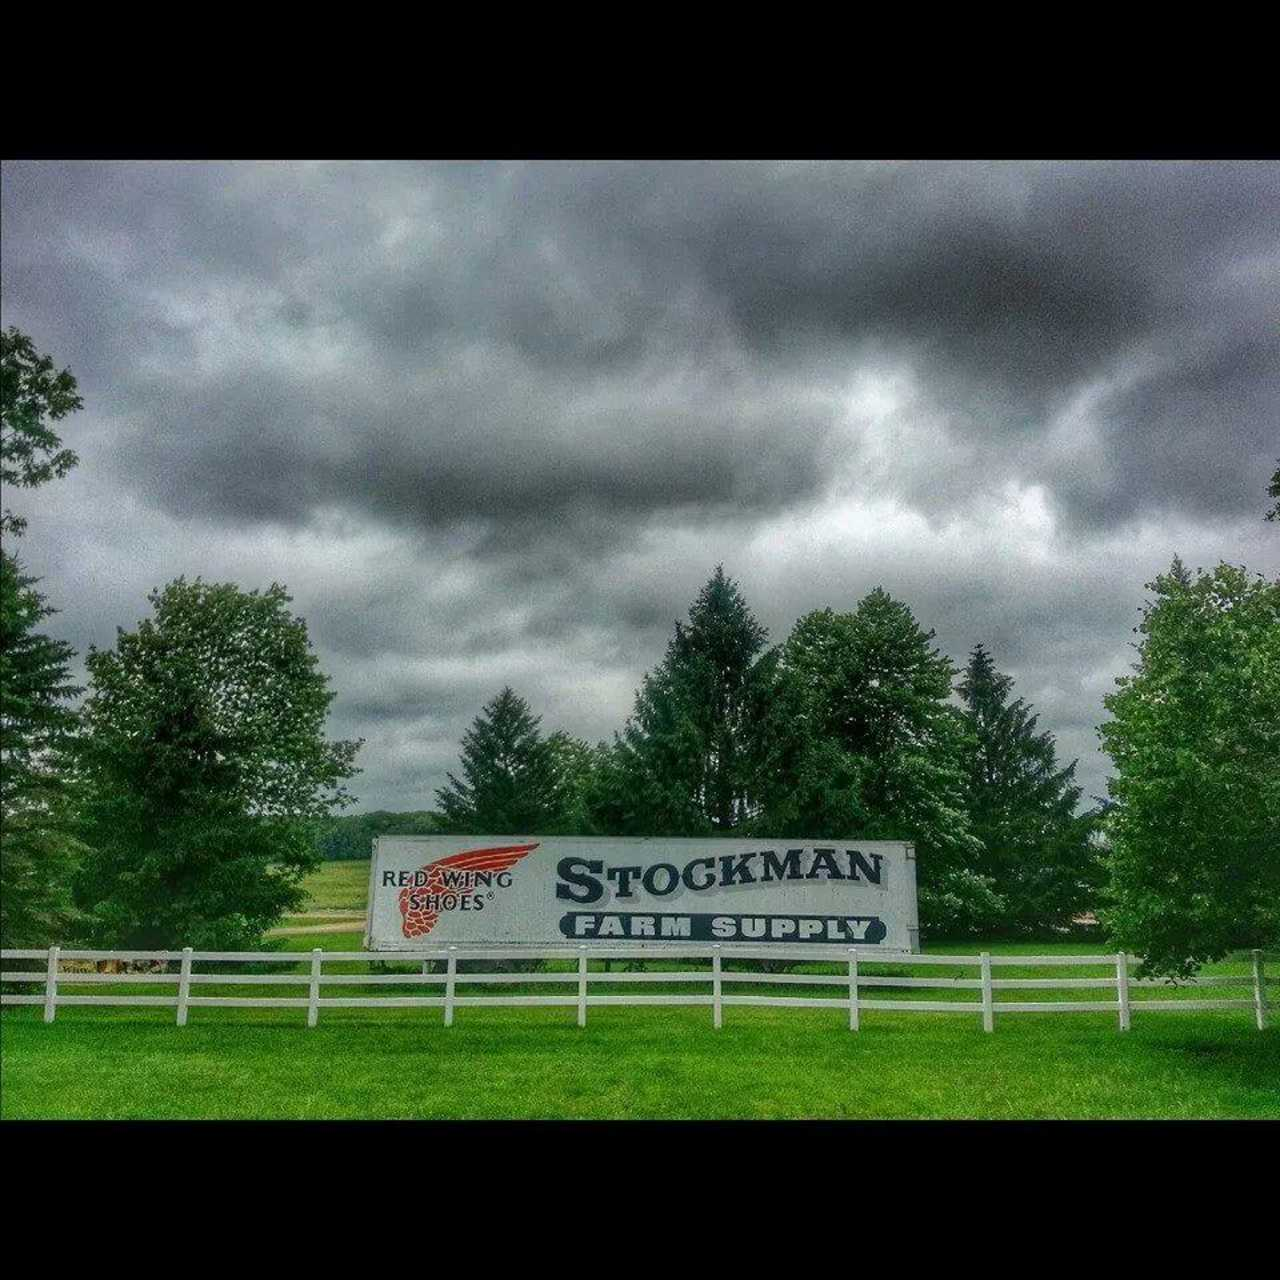 Stockman's Farm Supply - Wilson - Shopping - Retail Stores in Wilson WI